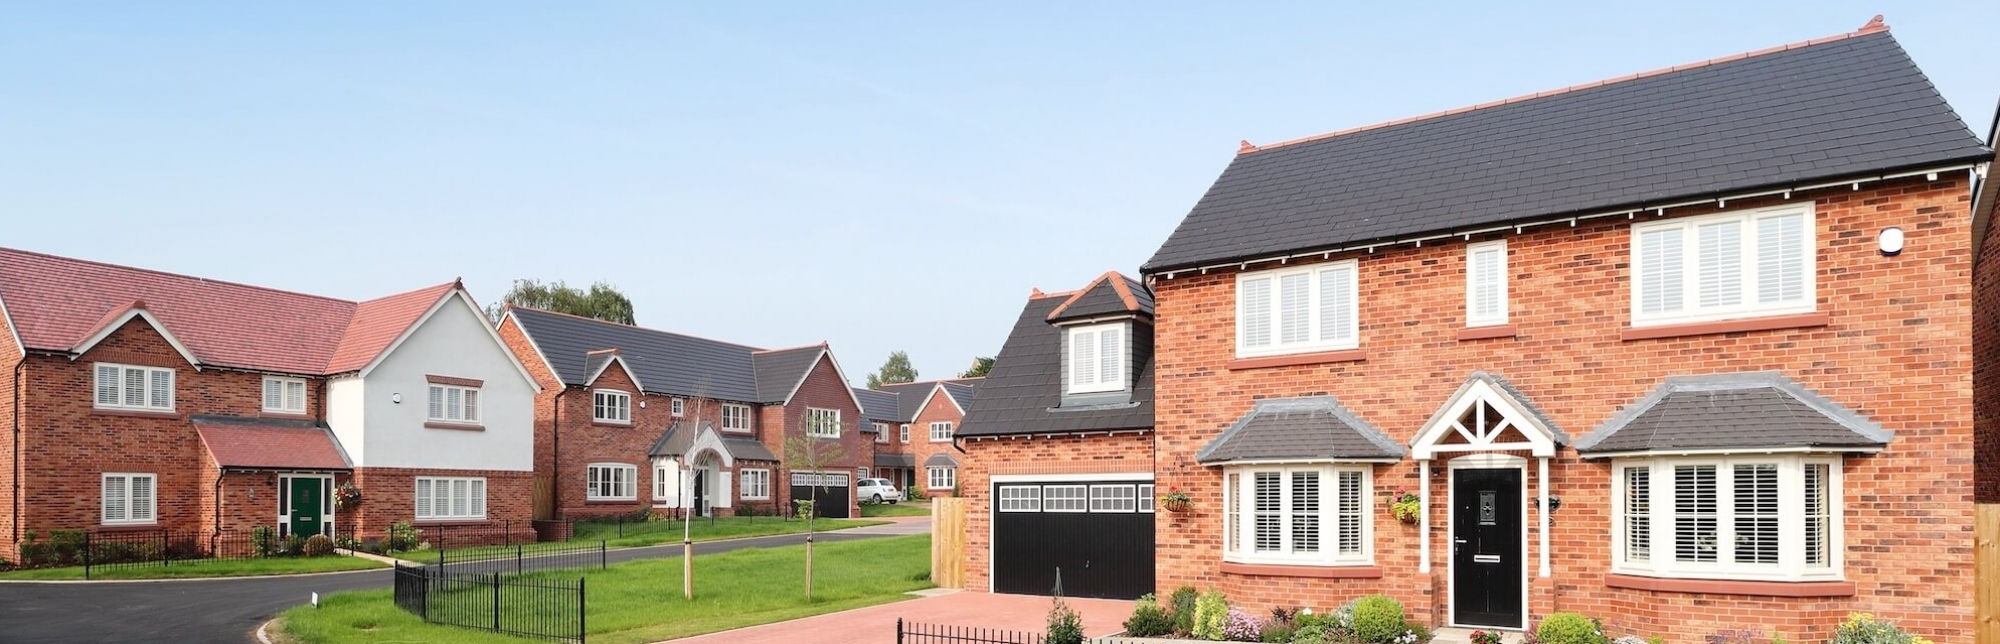 new build houses for sale in chester elan homes